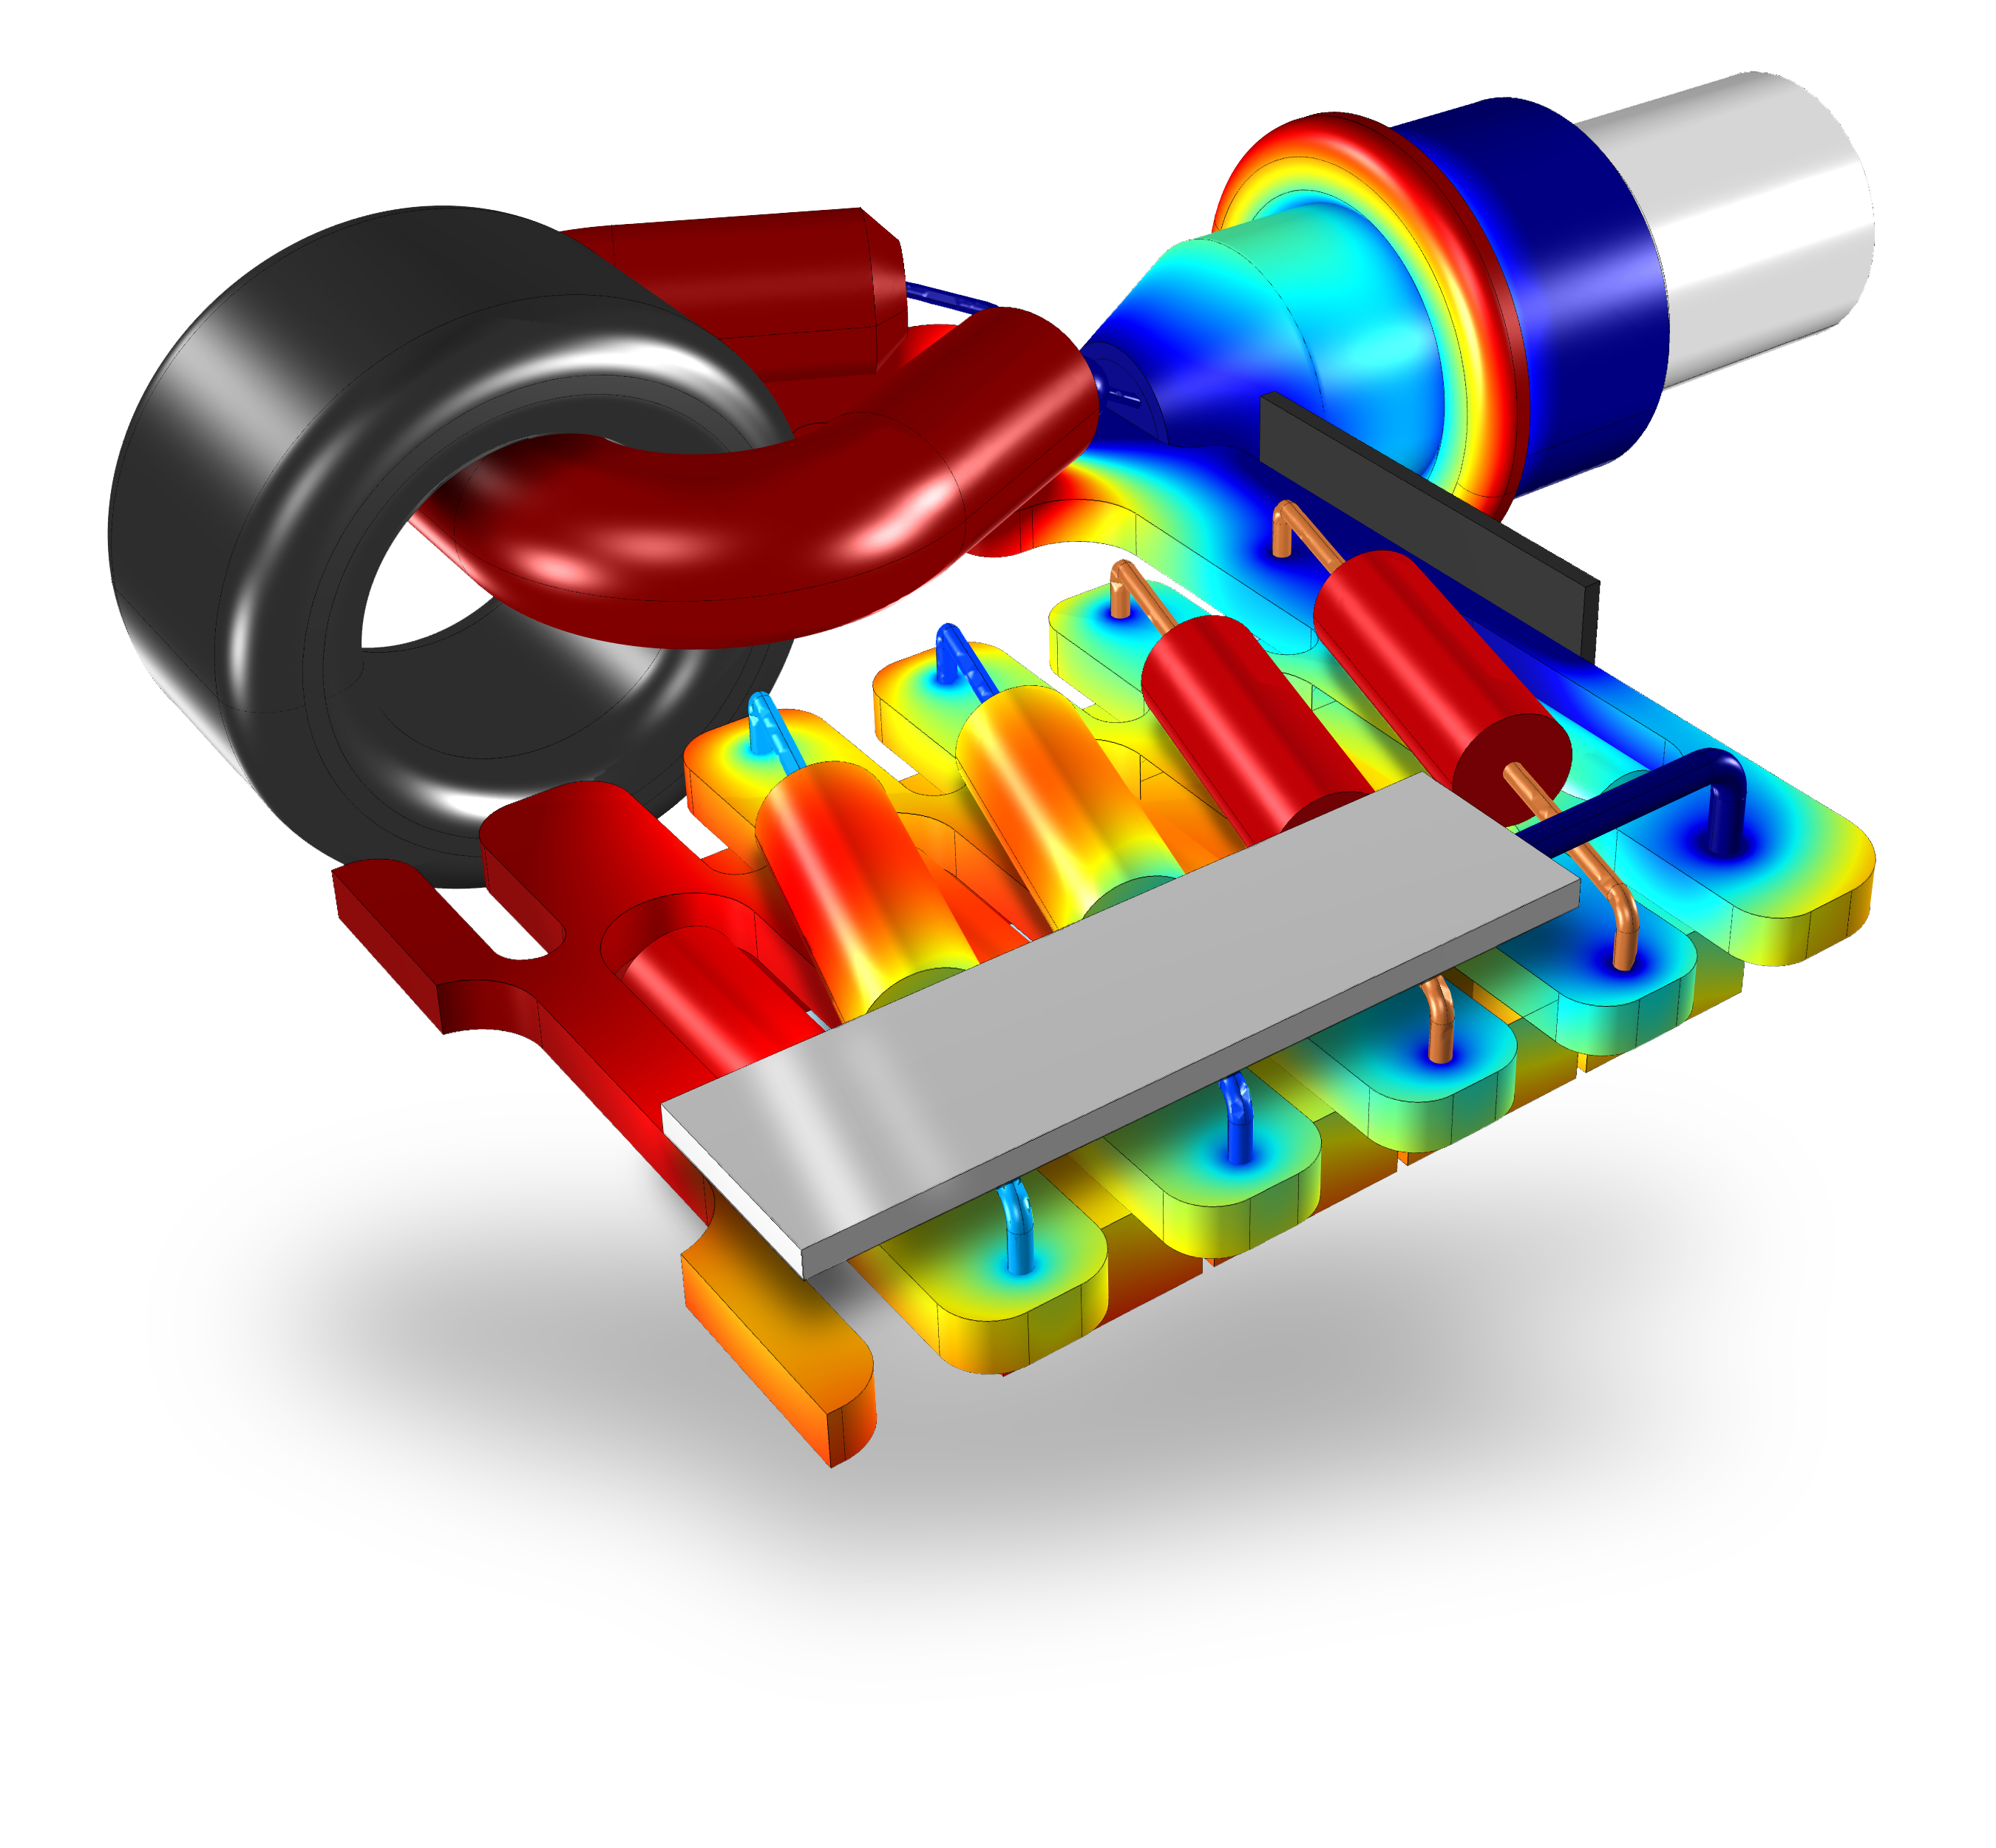 Simulation of the electromagnetic field in a high-voltage generator in an X-ray device. Model courtesy; Comet AG, Switzerland.